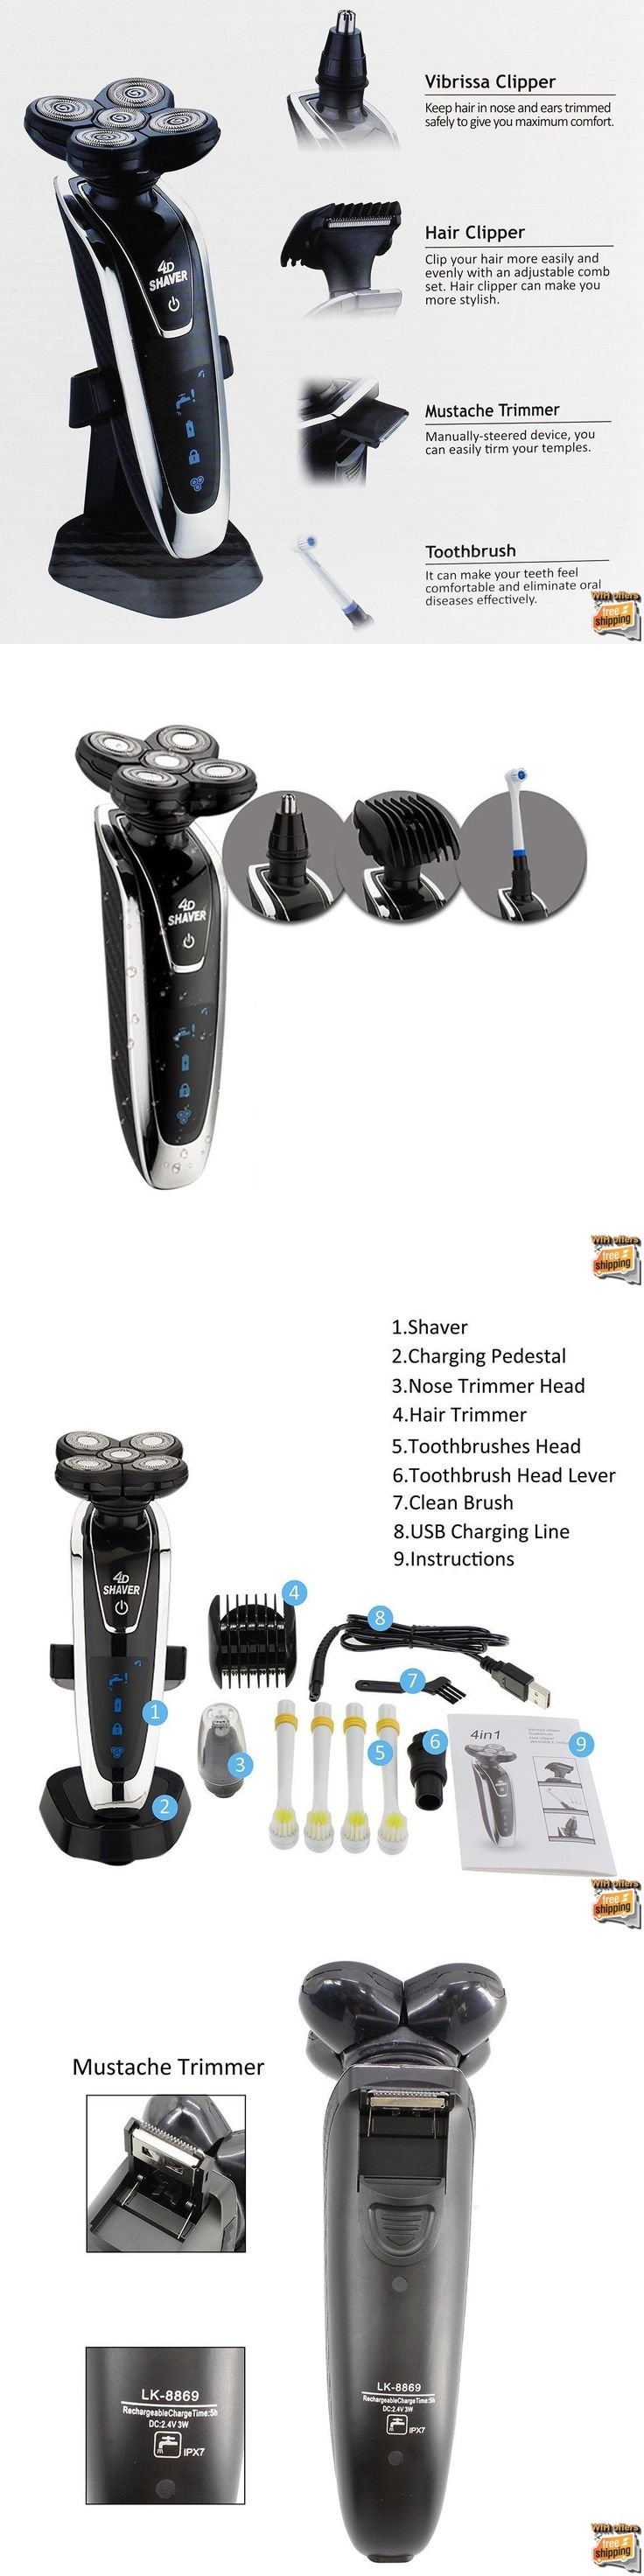 Mens Shavers: Bald Head Shavers For Men 4 In 1 Smart Best Shaver Smooth Skull Cordless Wet Dry -> BUY IT NOW ONLY: $64.79 on eBay!